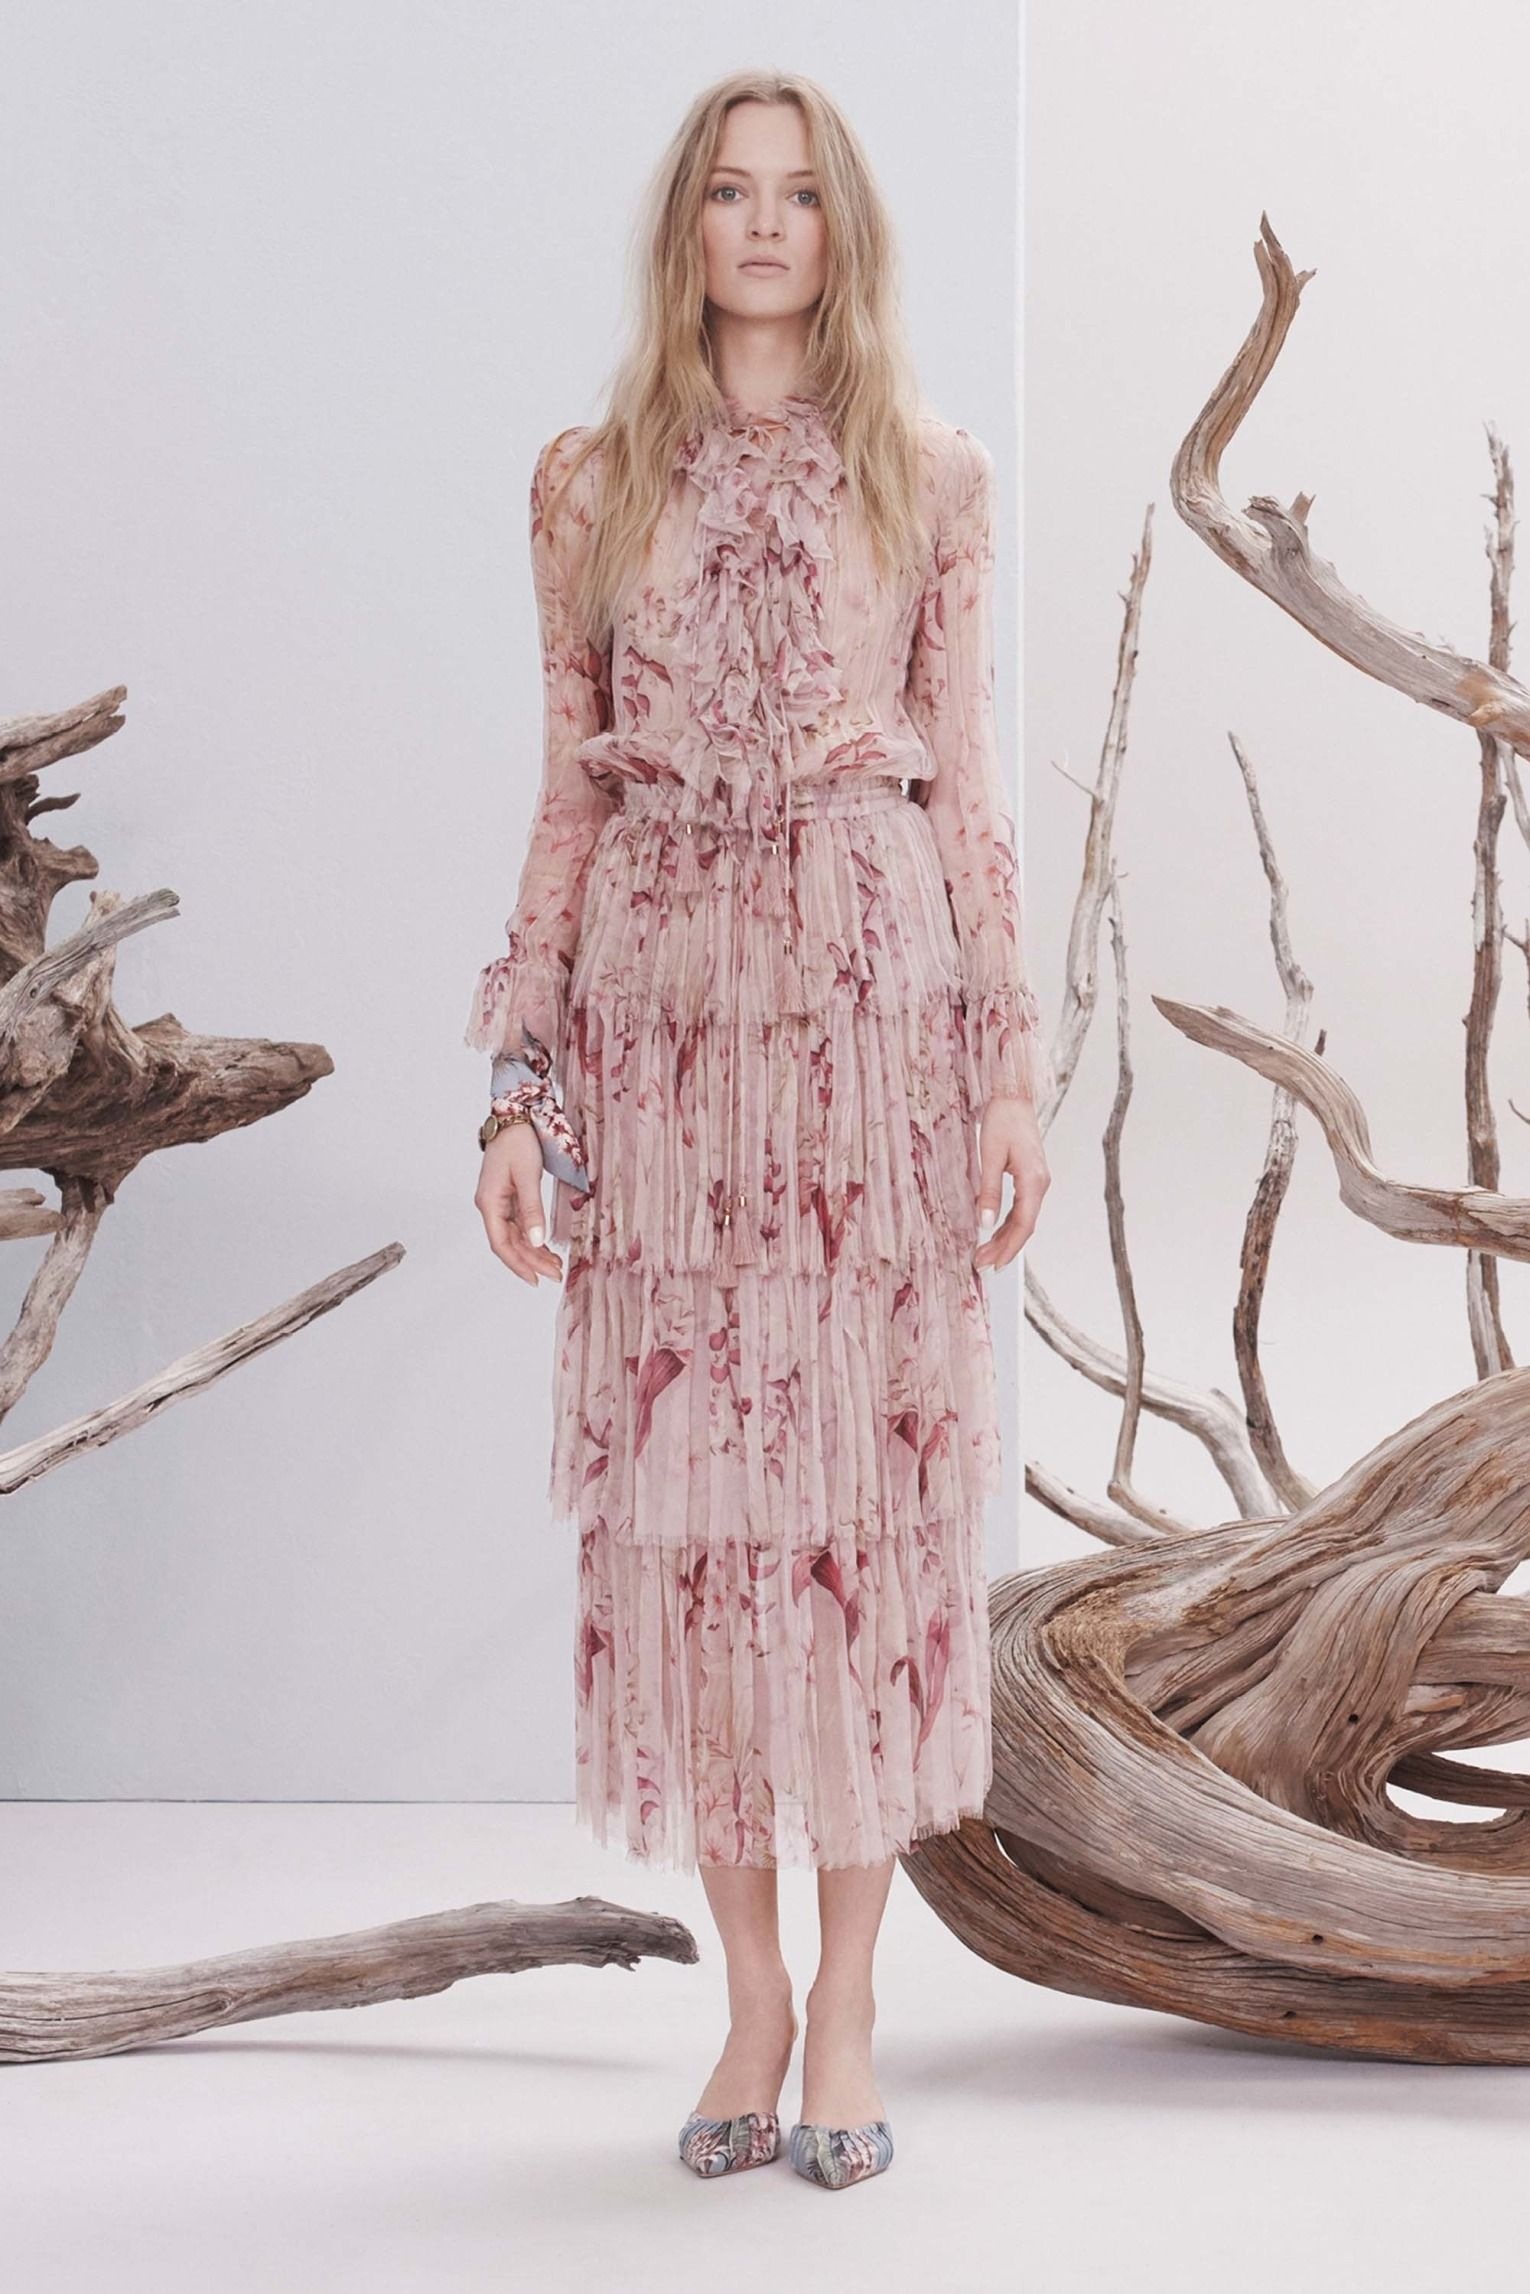 Zimmermann resort fashion show resorts collection and fashion